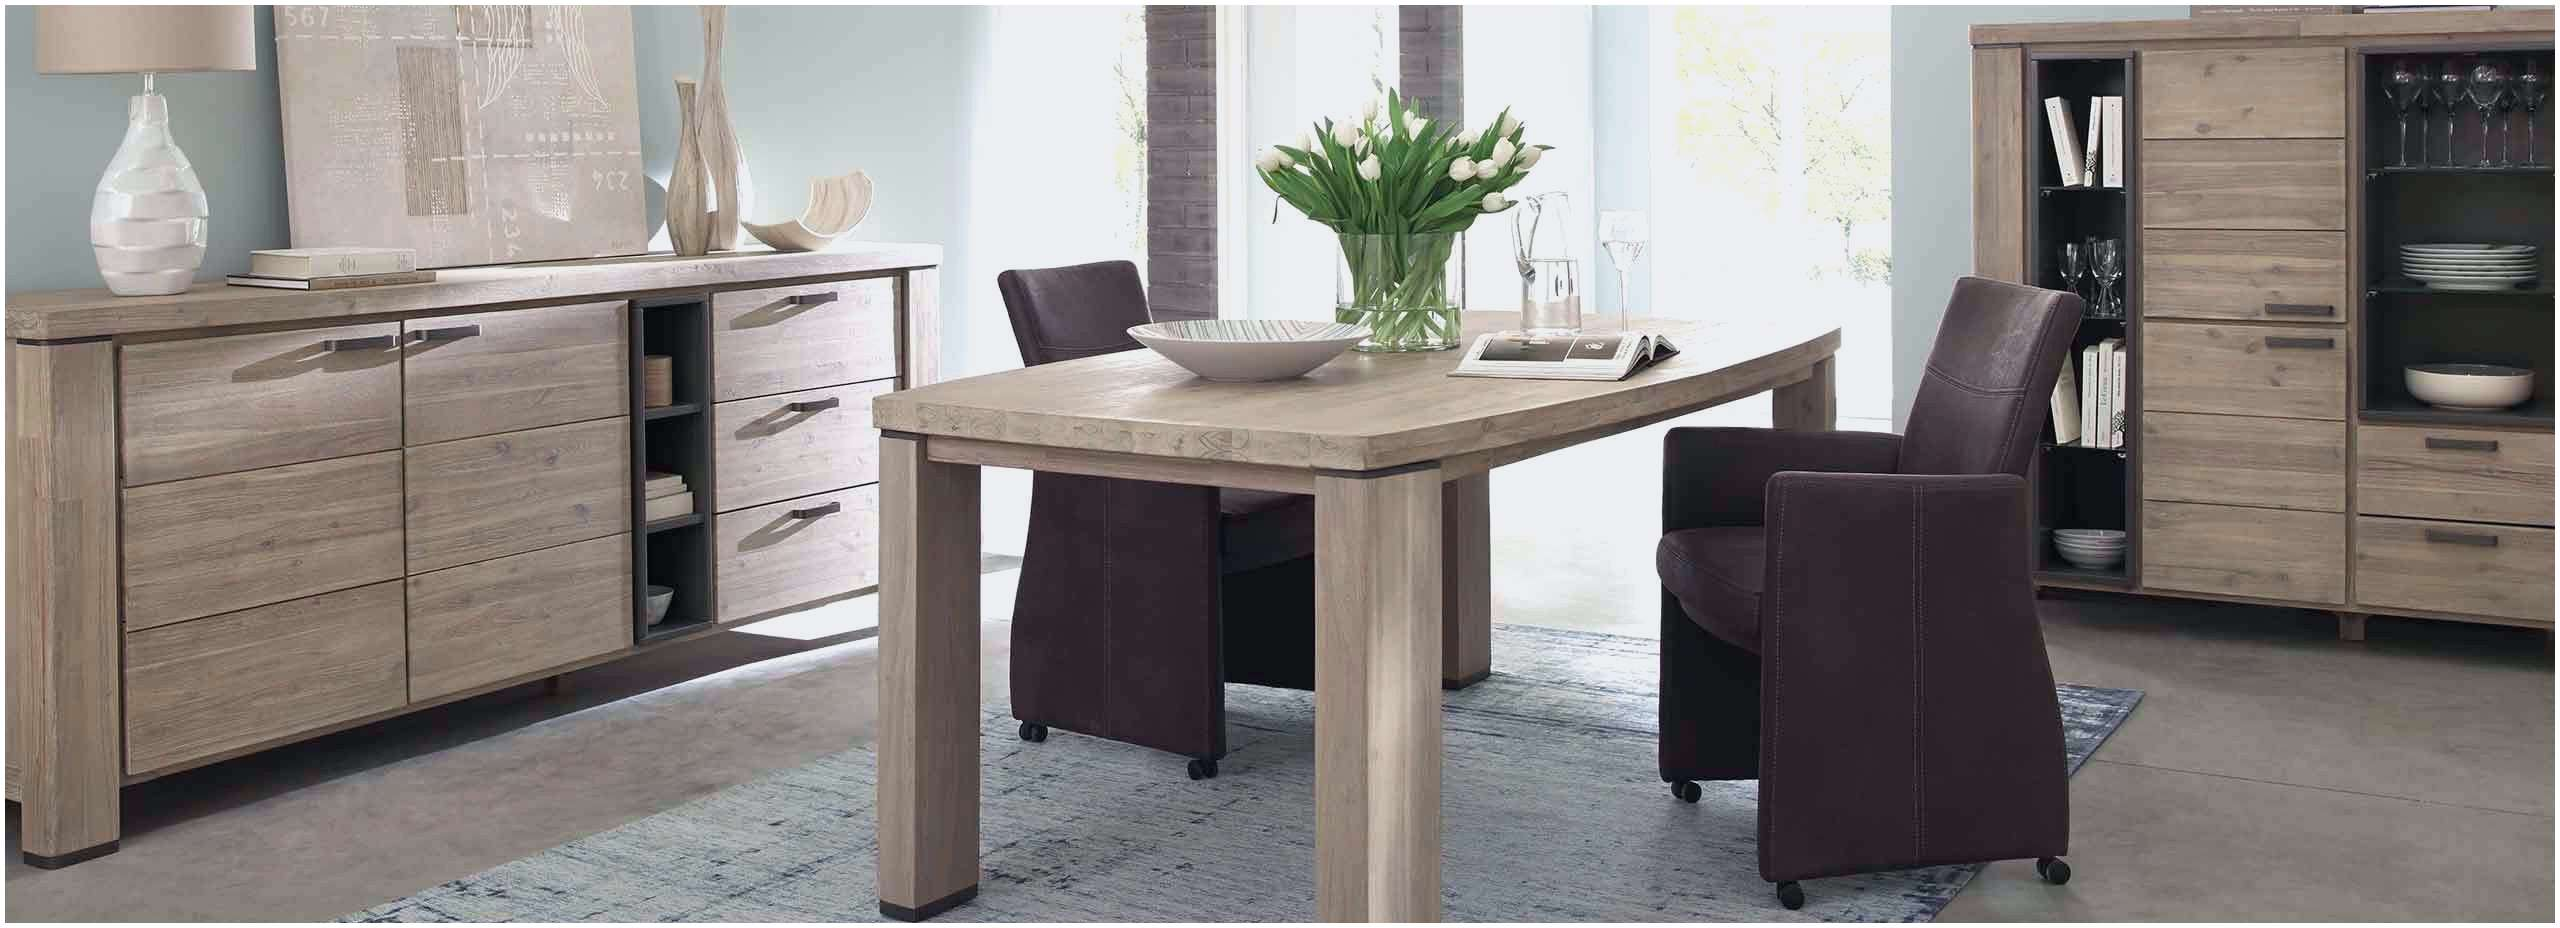 Table Teck Interieur Charmant Table A Manger Weba Of 25 Frais Table Teck Interieur